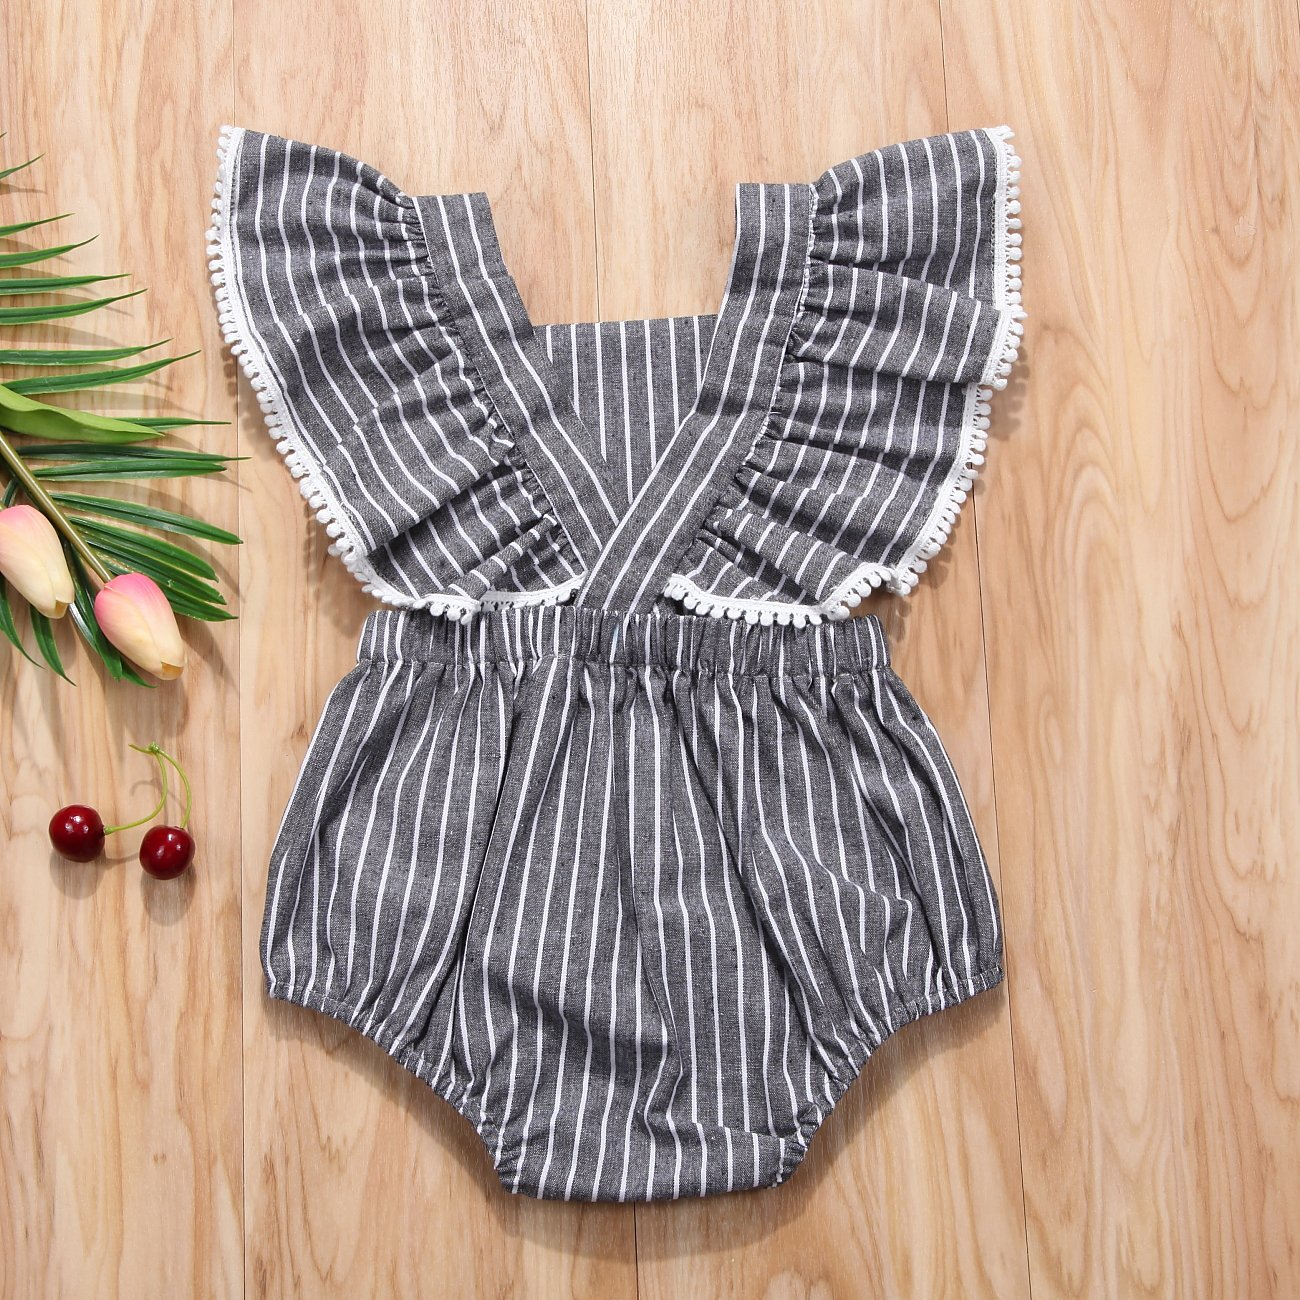 Listogether Summer Newborn Kids Baby Girls Cute Stripe Tassels Romper Bodysuit Jumpsuit Clothes Outfits